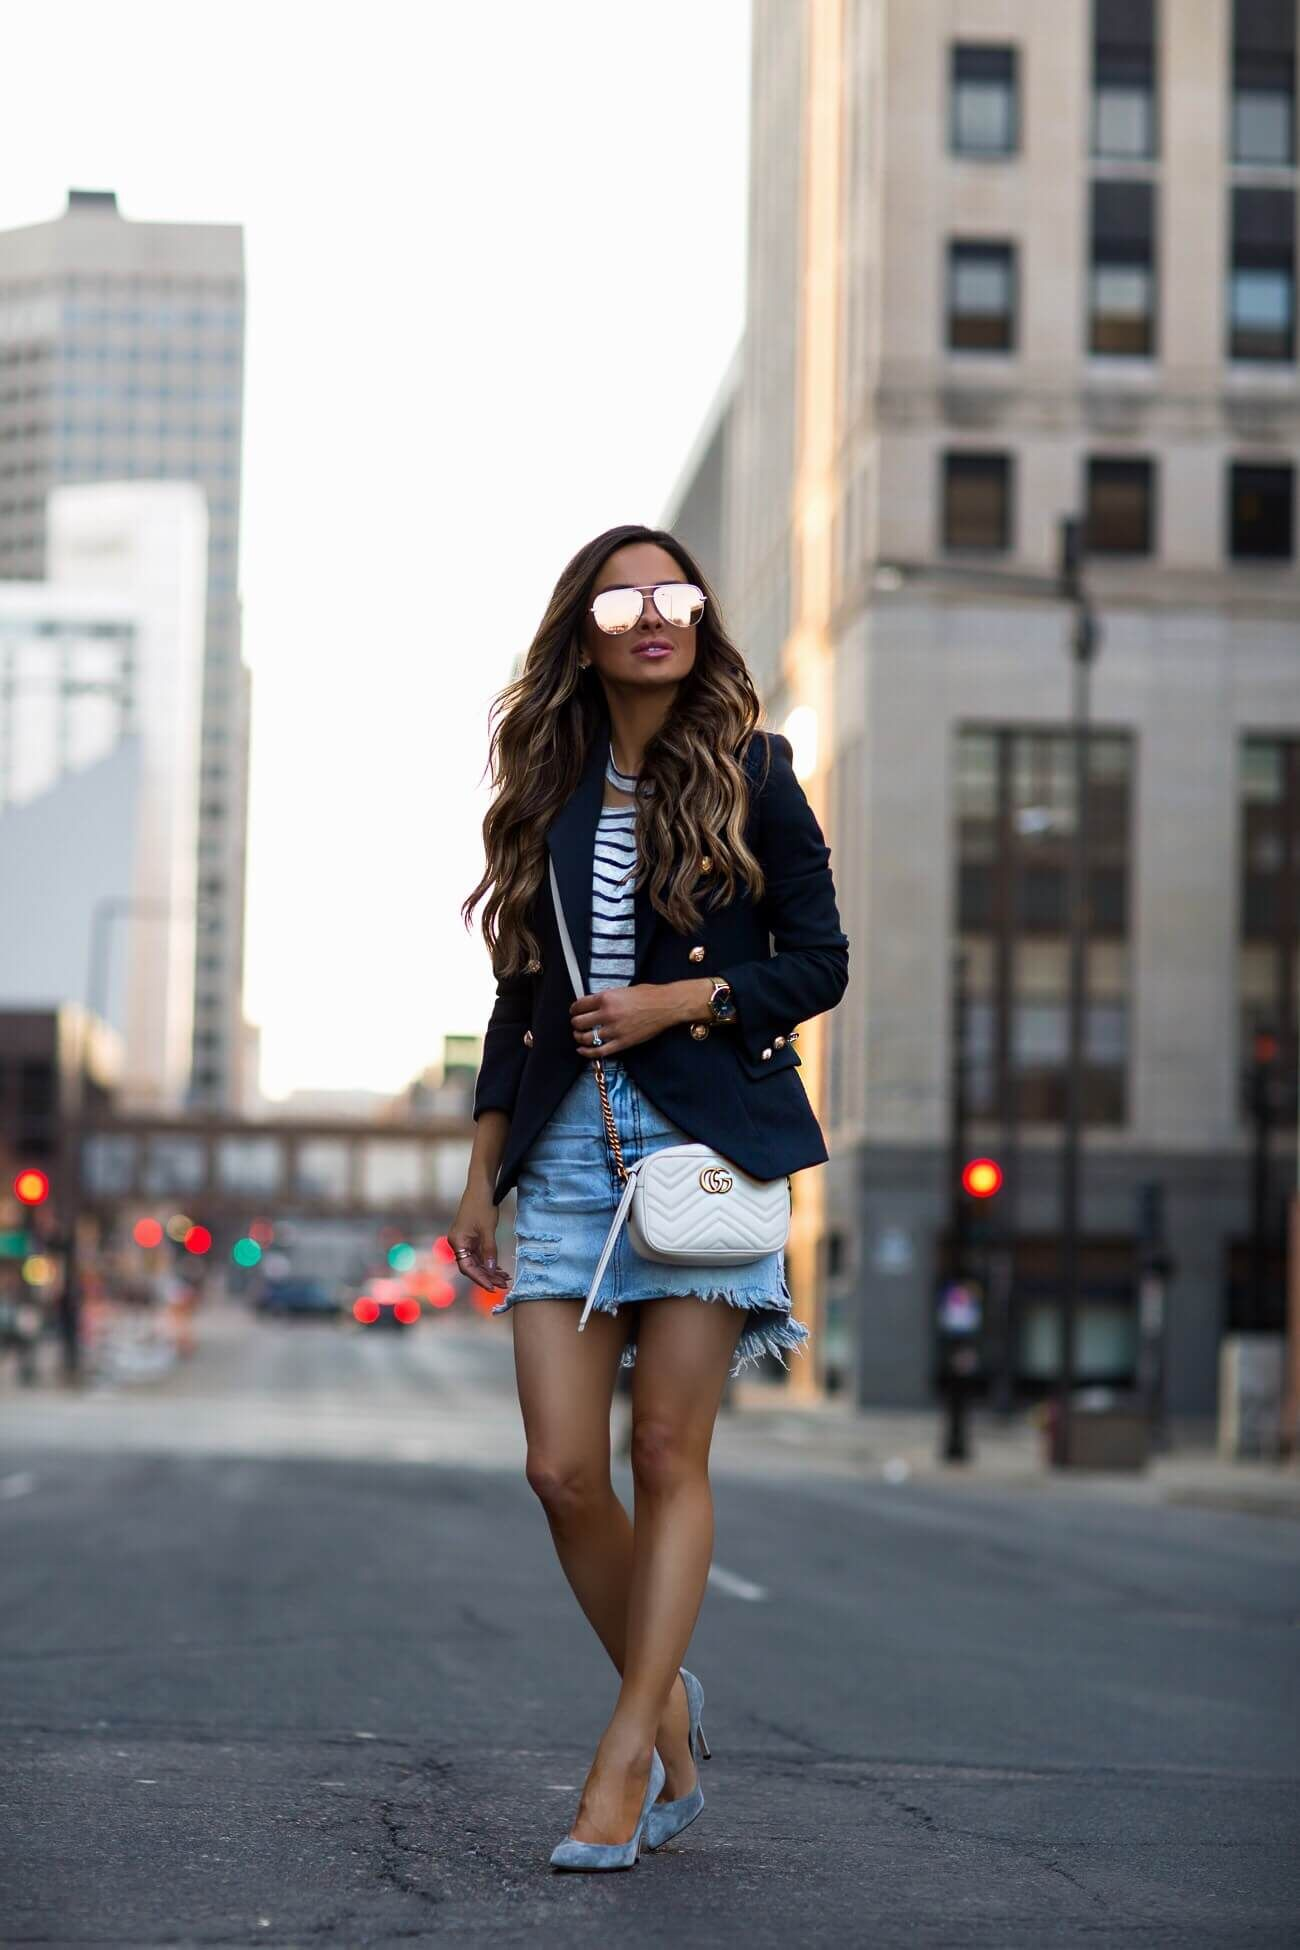 d15d56cdfa28 fashion blogger mia mia mine wearing a denim skirt and navy blazer from  shopbop